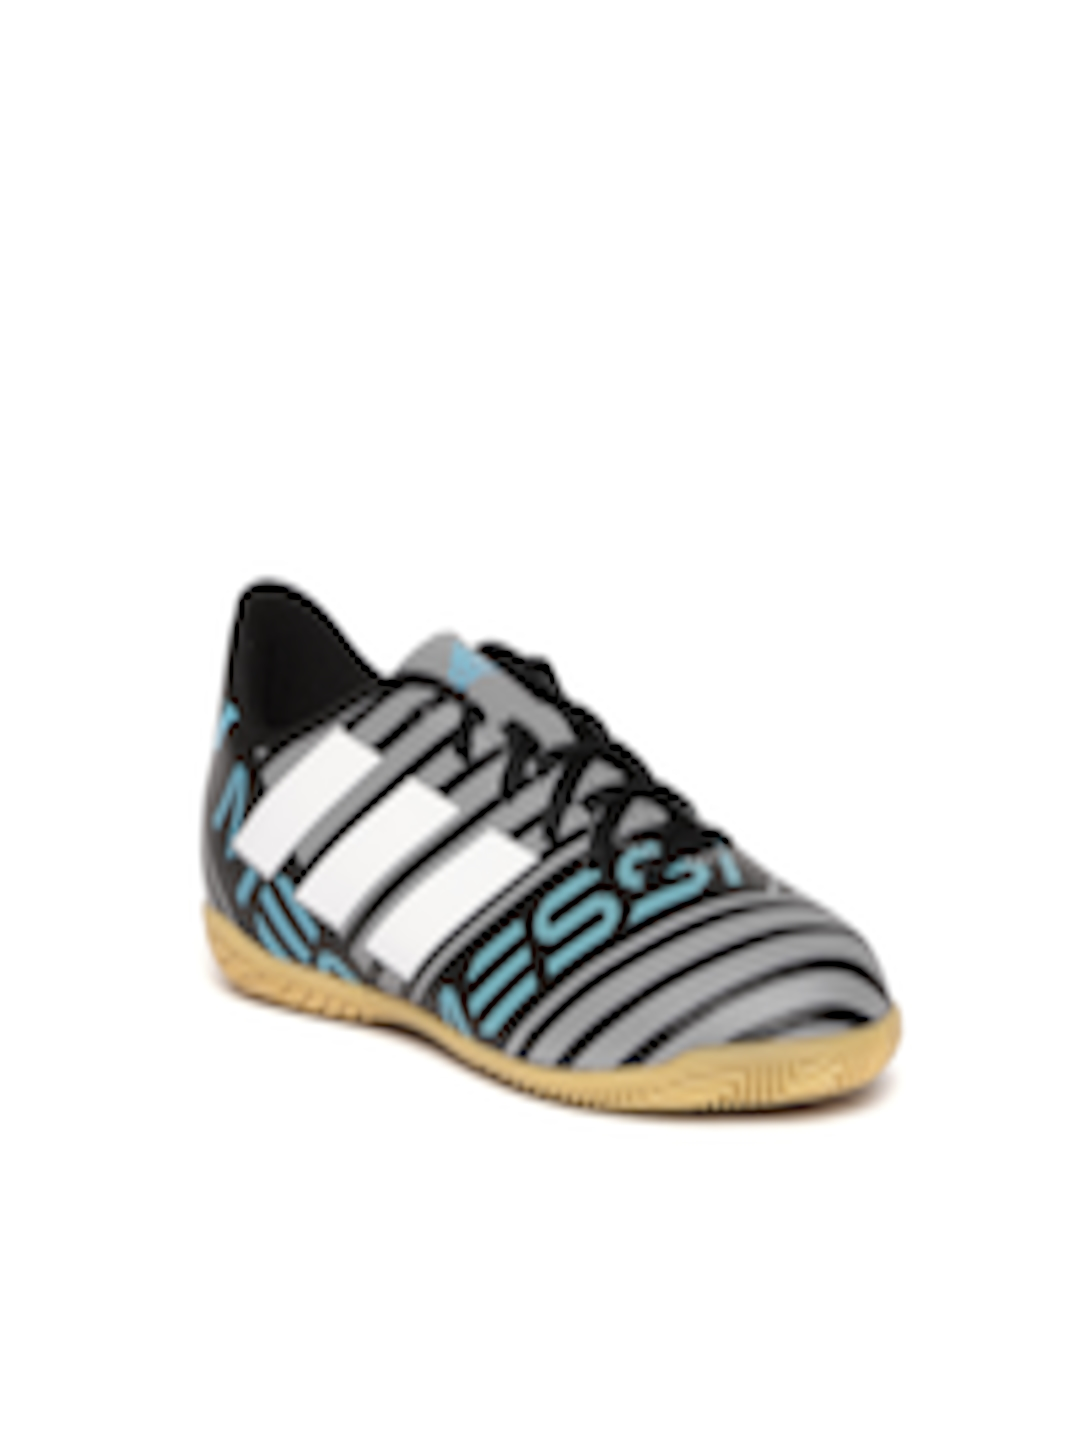 Buy ADIDAS Boys Grey & Black Nemeziz Messi Tango 17.4 IN J Striped Football Shoes Footwear for Boys